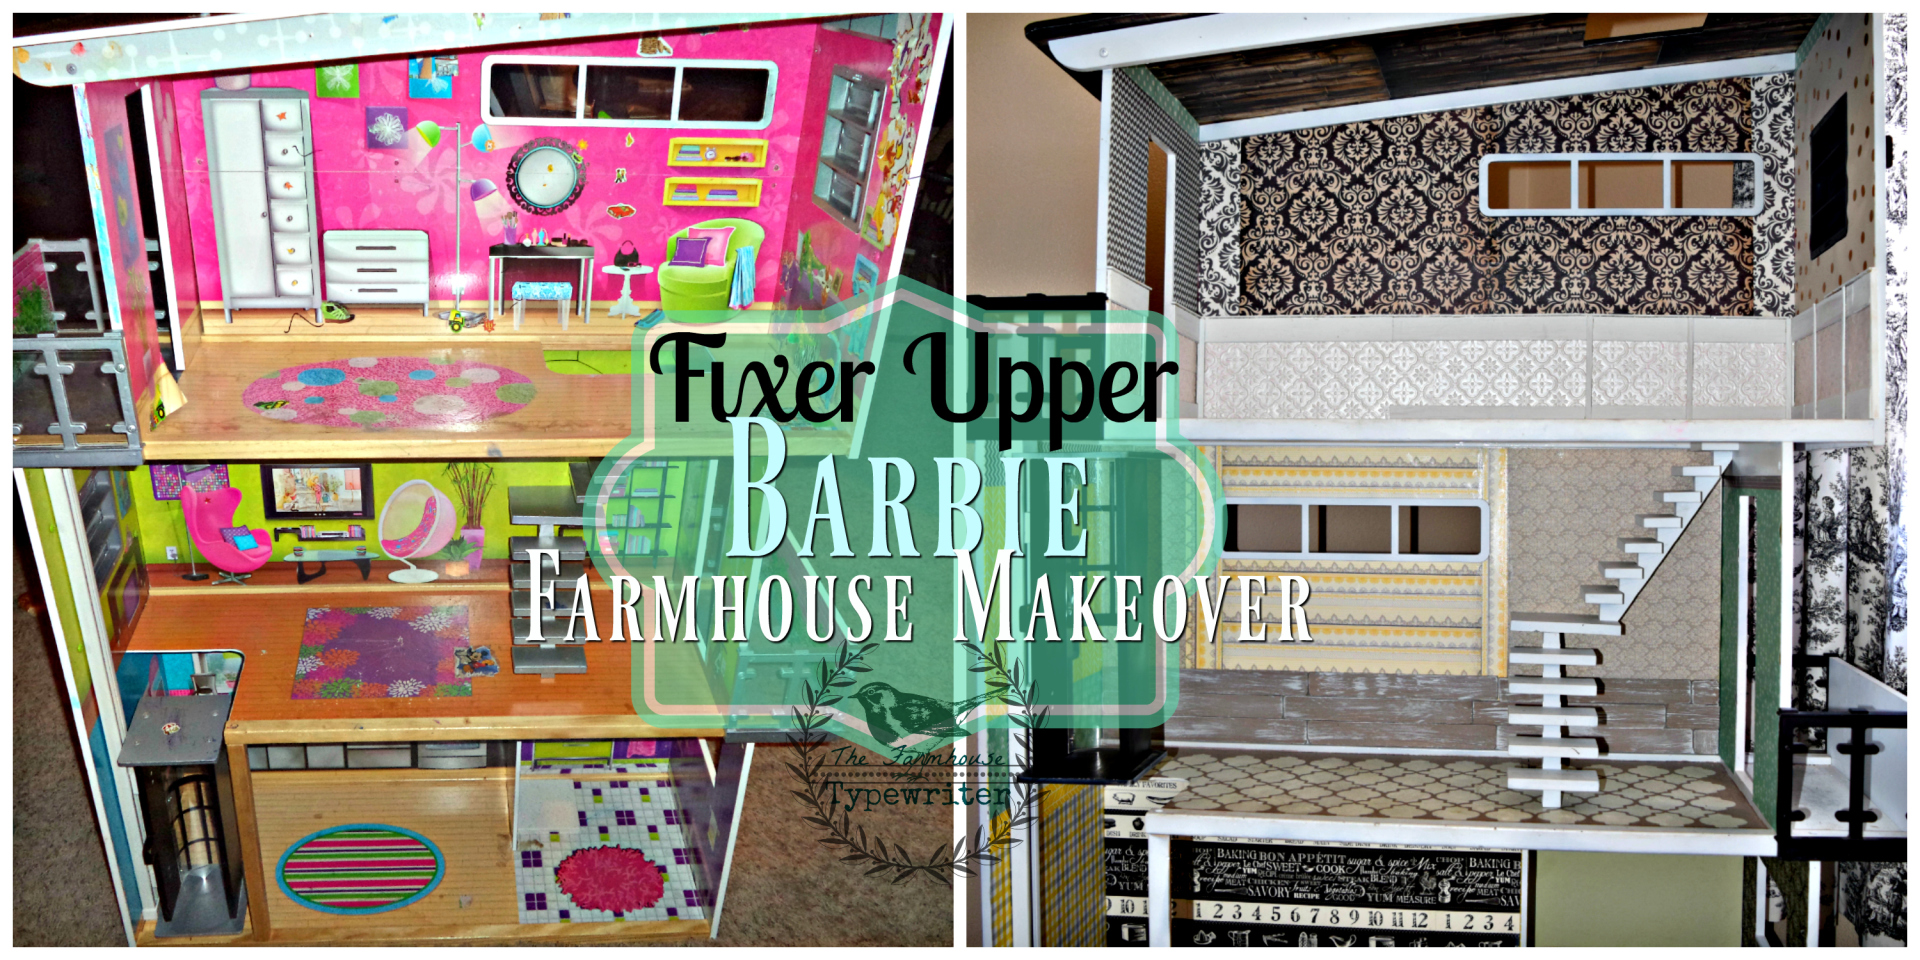 barbie fixer upper farmhouse before and after